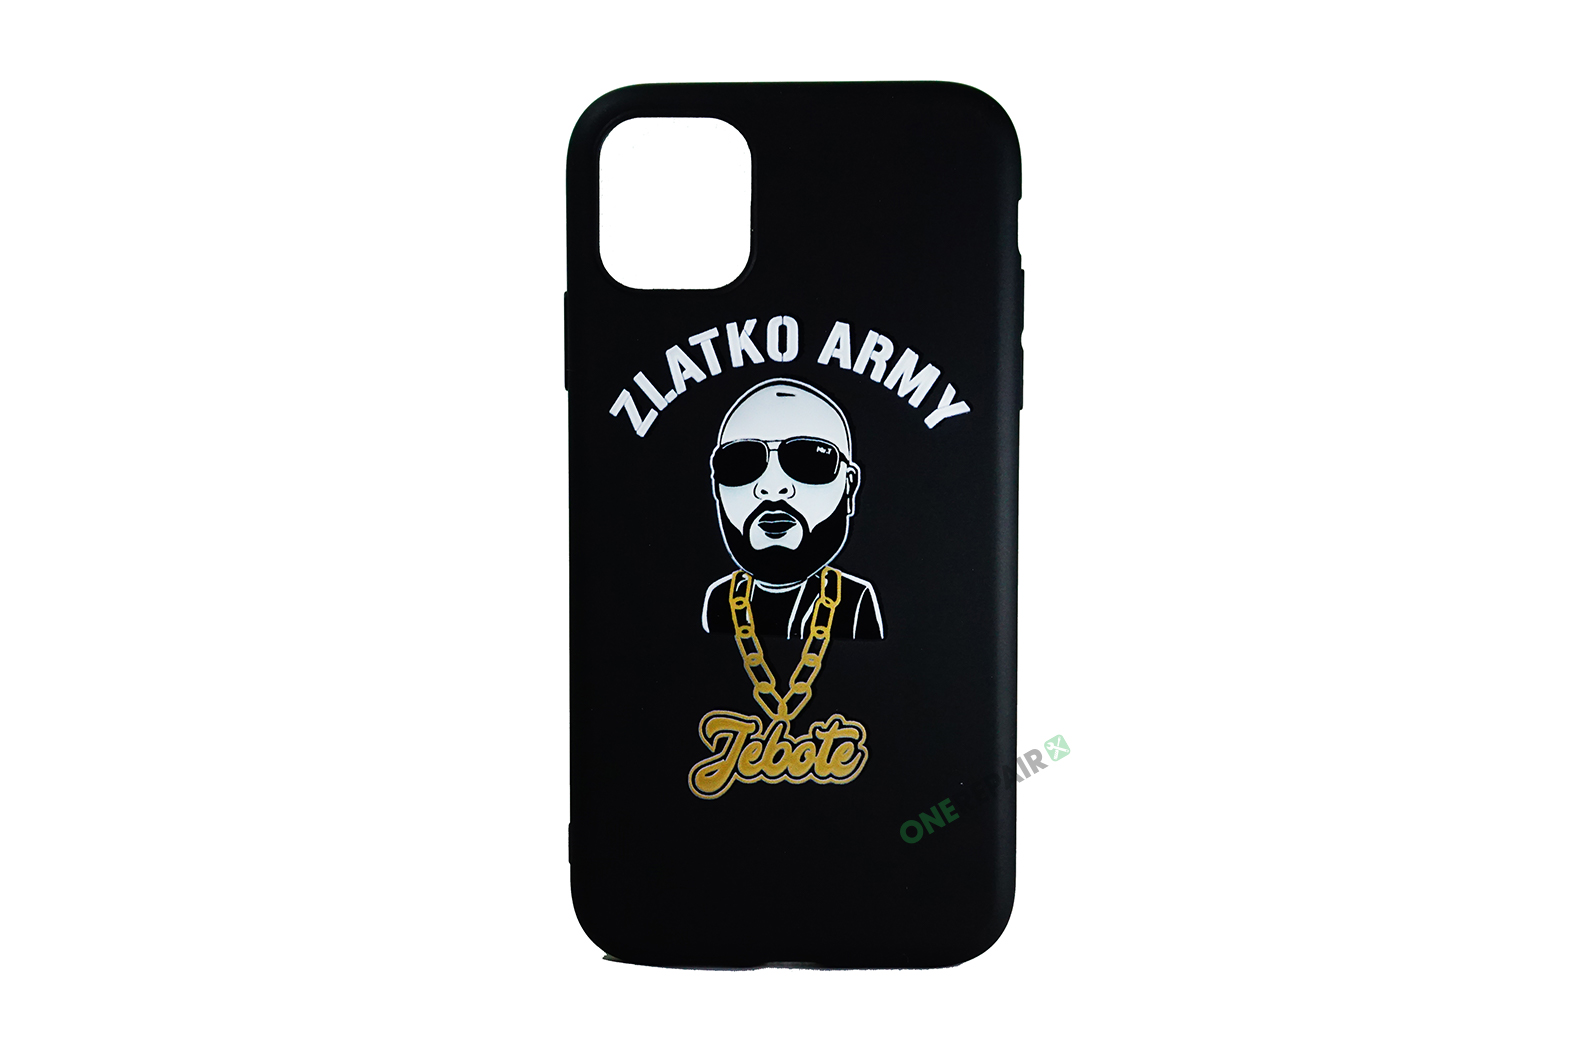 353784-001_iPhone_11_Zlatko_Army_Sort_OneRepair_00001